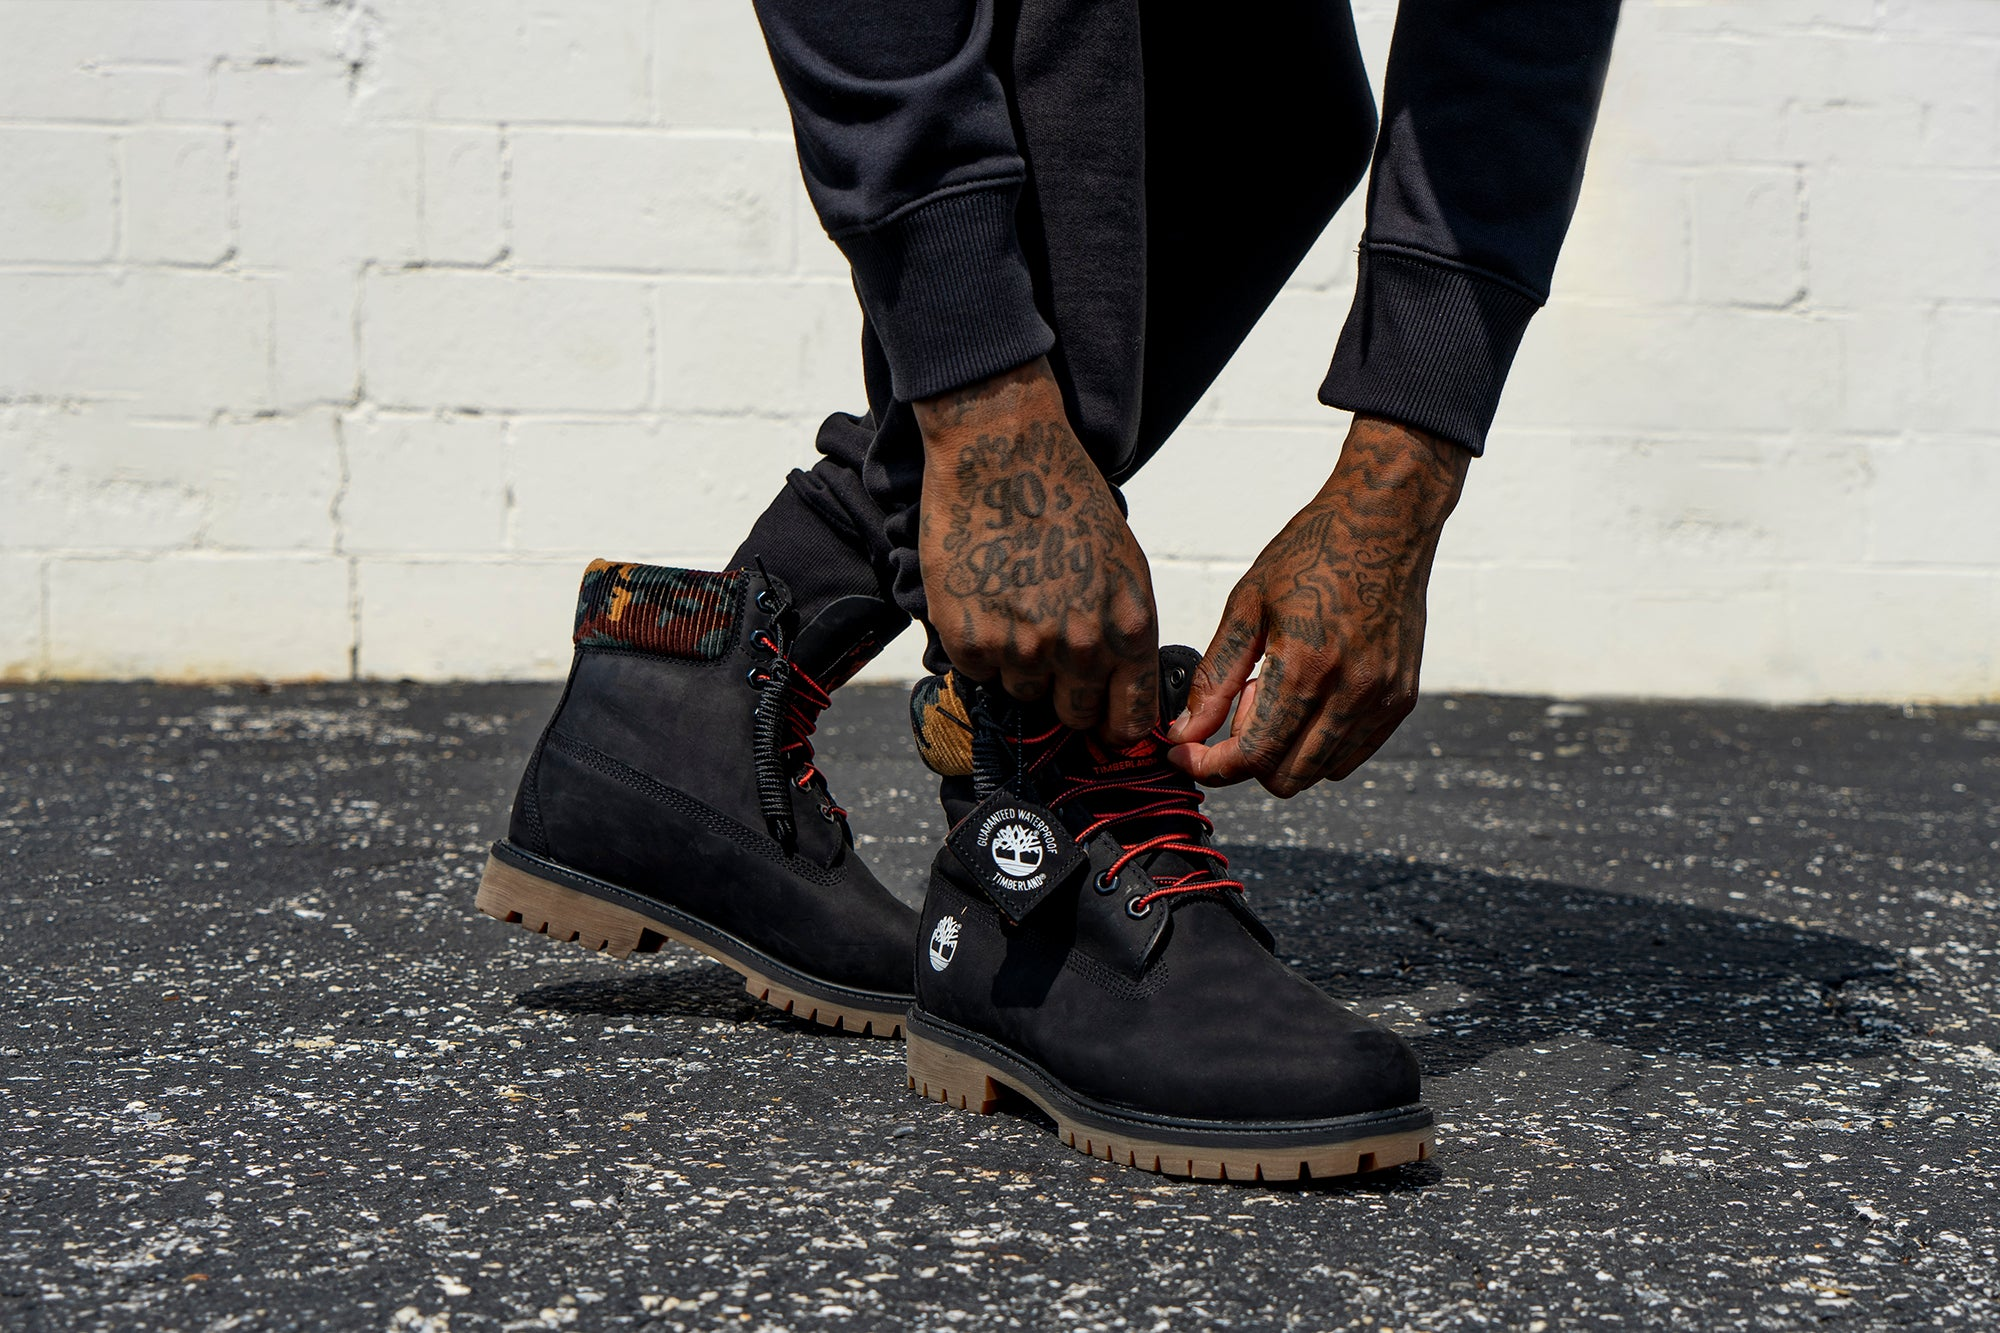 Timberland Heritage 6-Inch Waterproof Warm Lined Boots